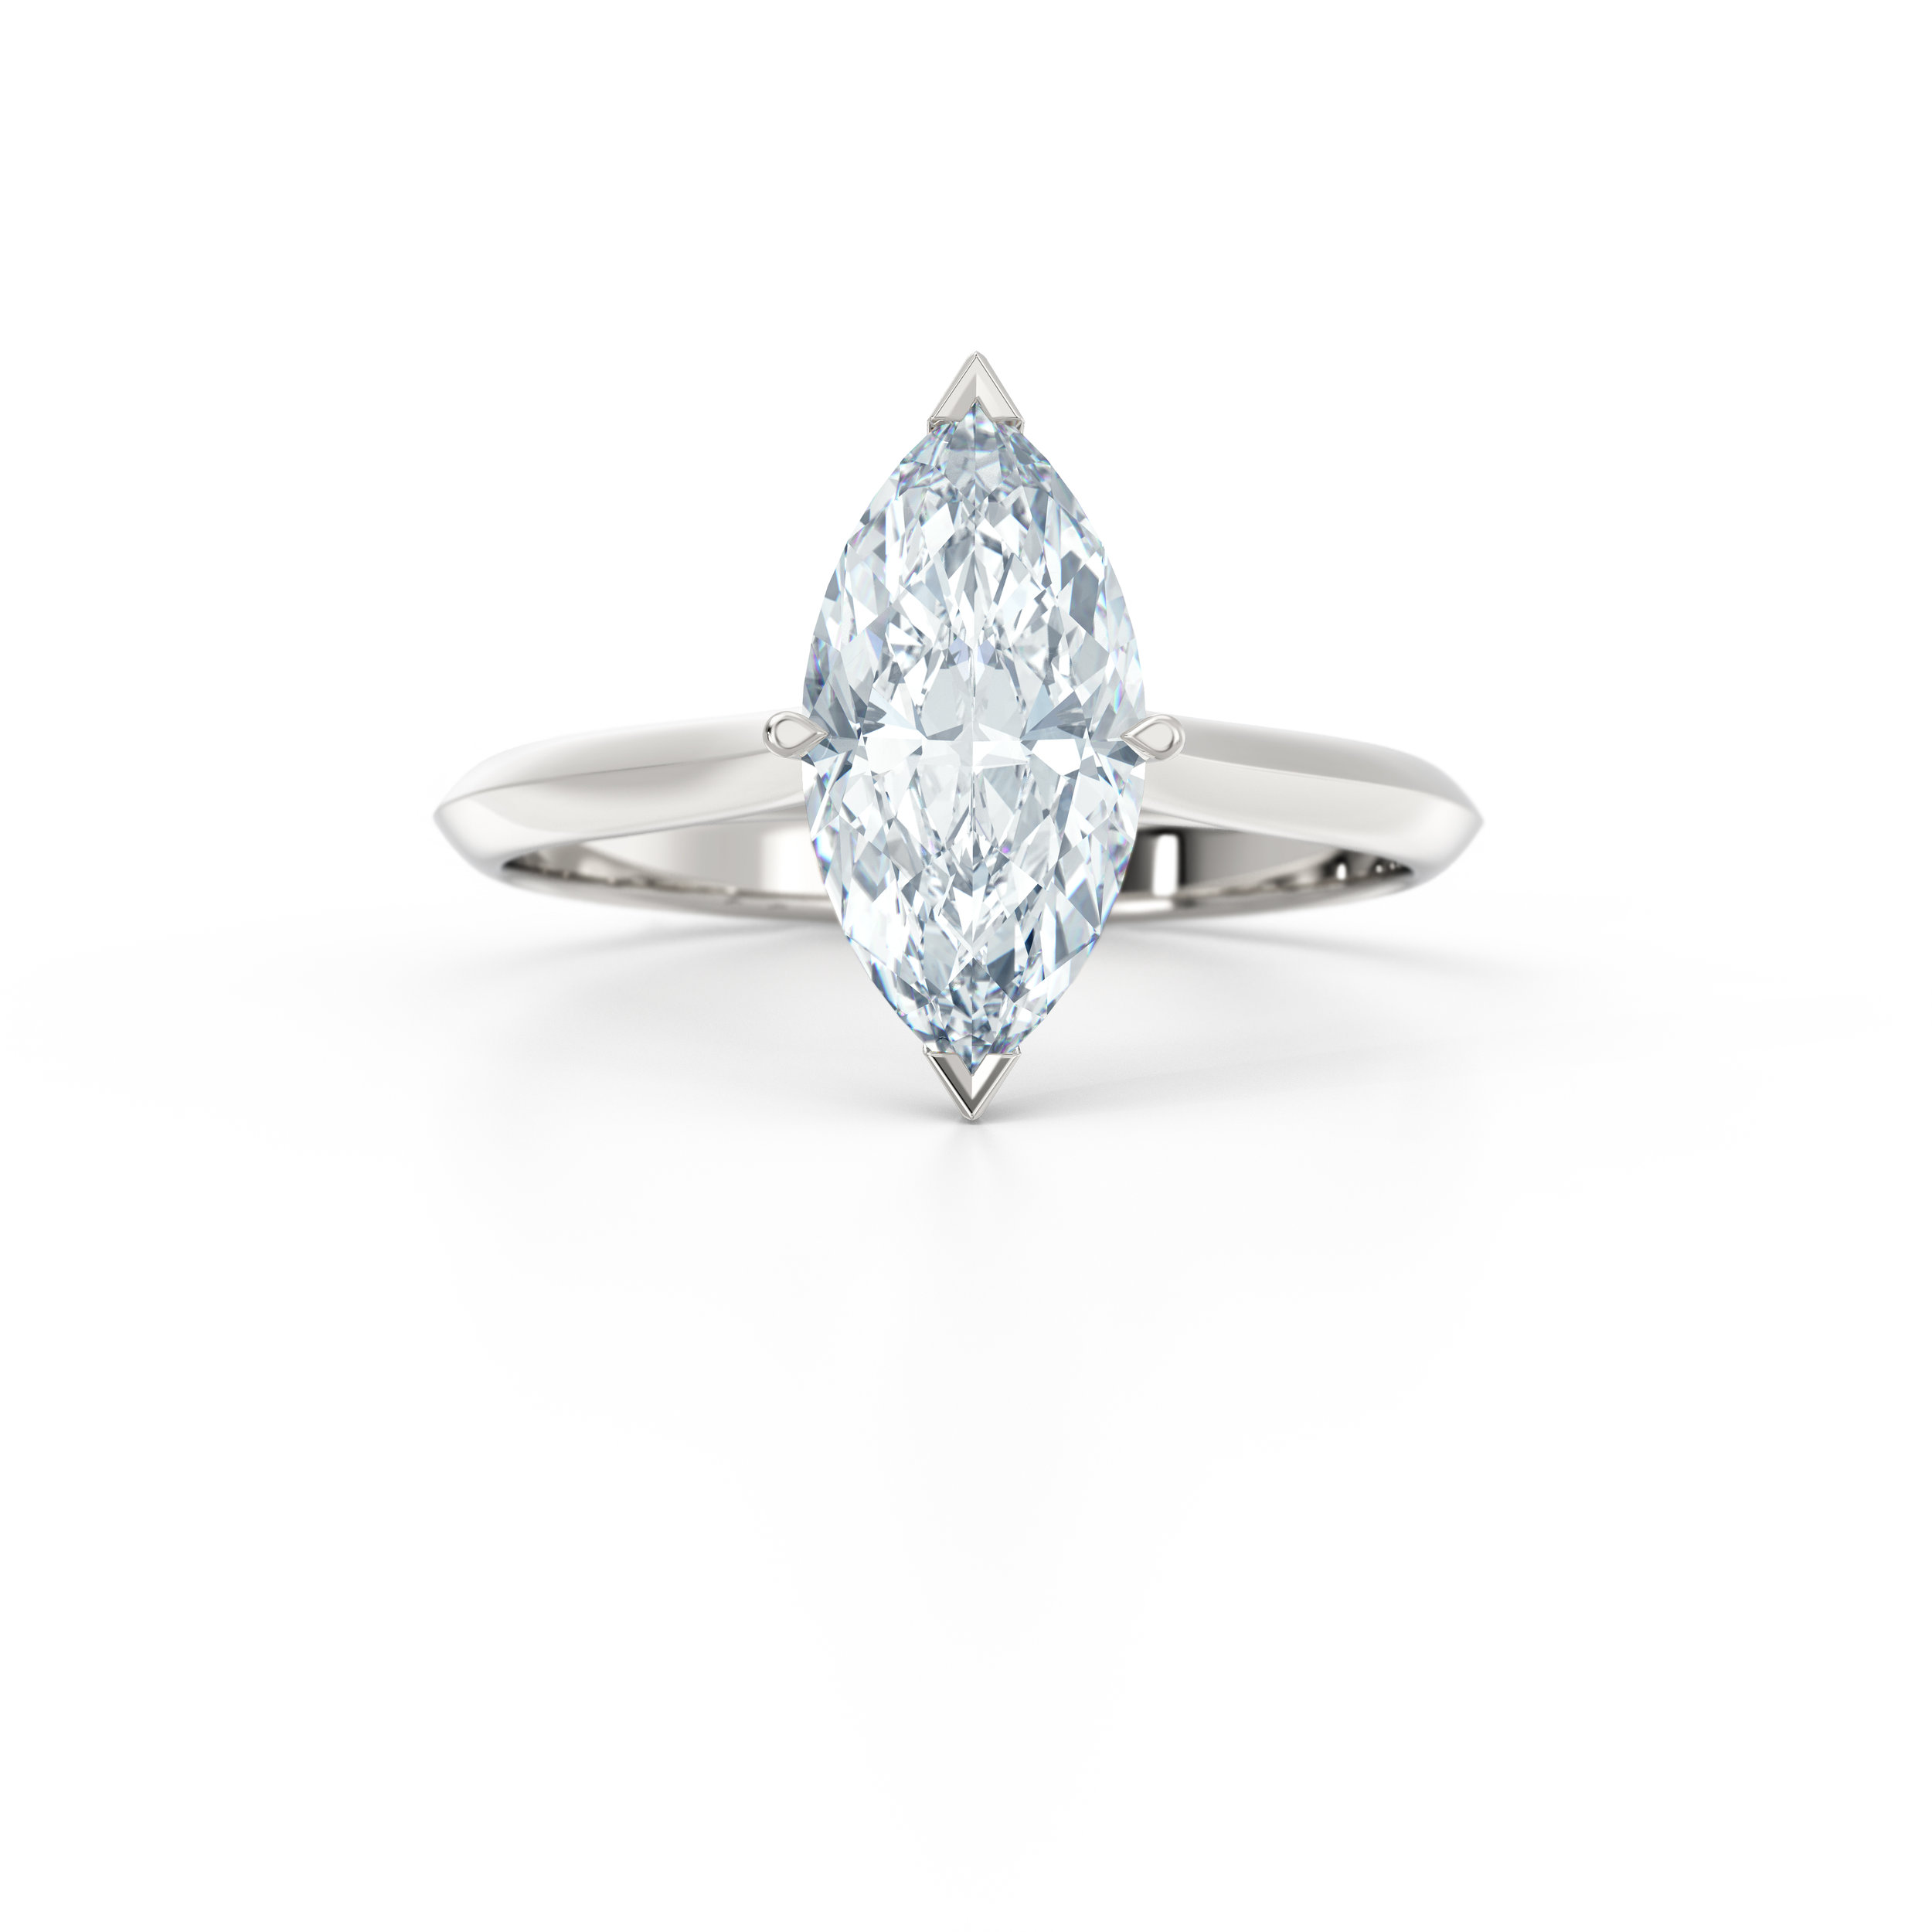 Marquise Cut Solitaire Engagement Ring | Hatton GardenMarquise Cut Solitaire Engagement Ring | Hatton Garden